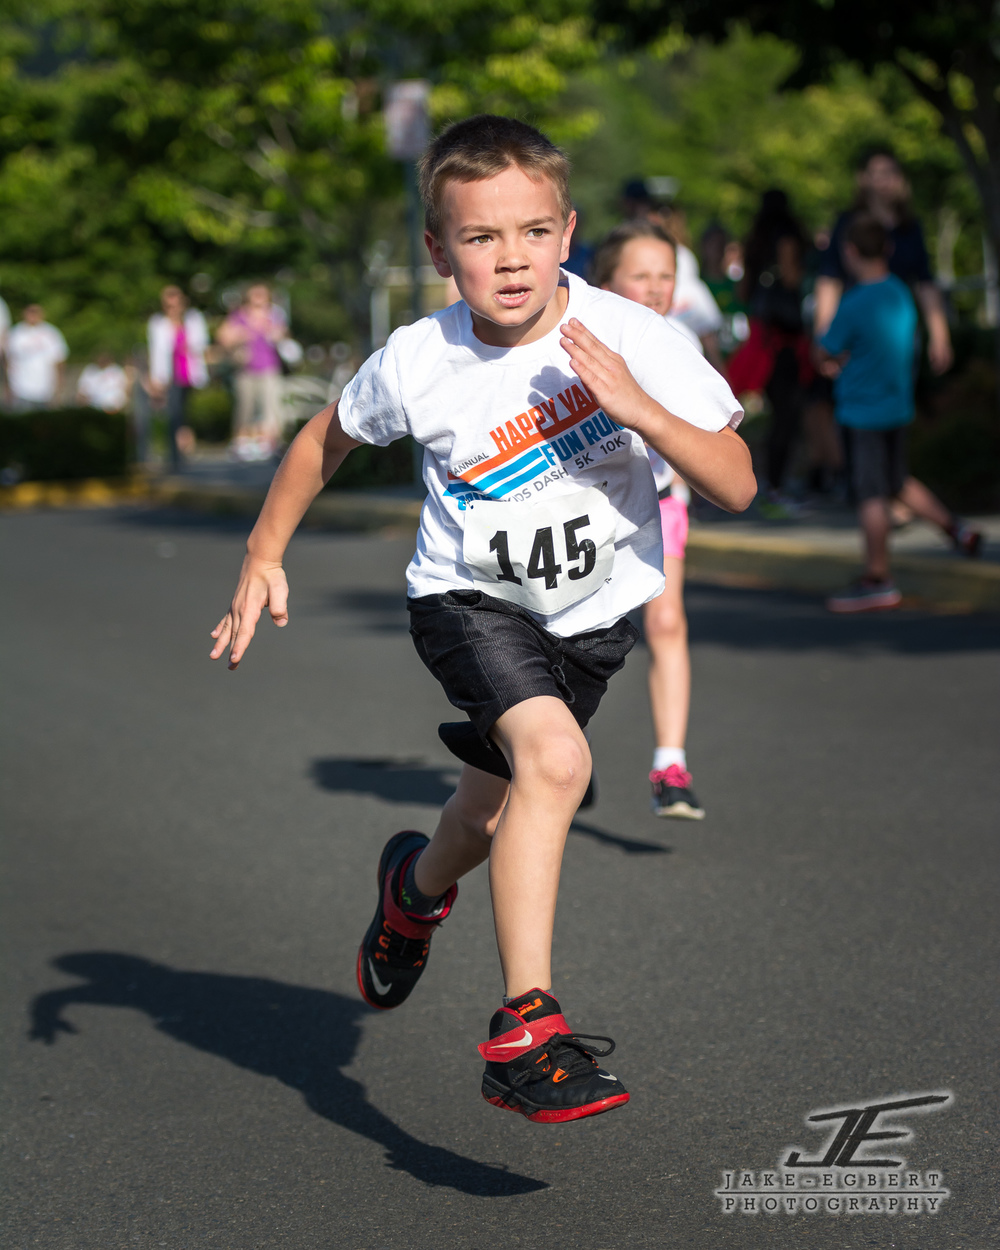 Happy Valley Fun Run 2015. Click the picture to see our favorite shots from the race and to purchase high quality prints or downloads.